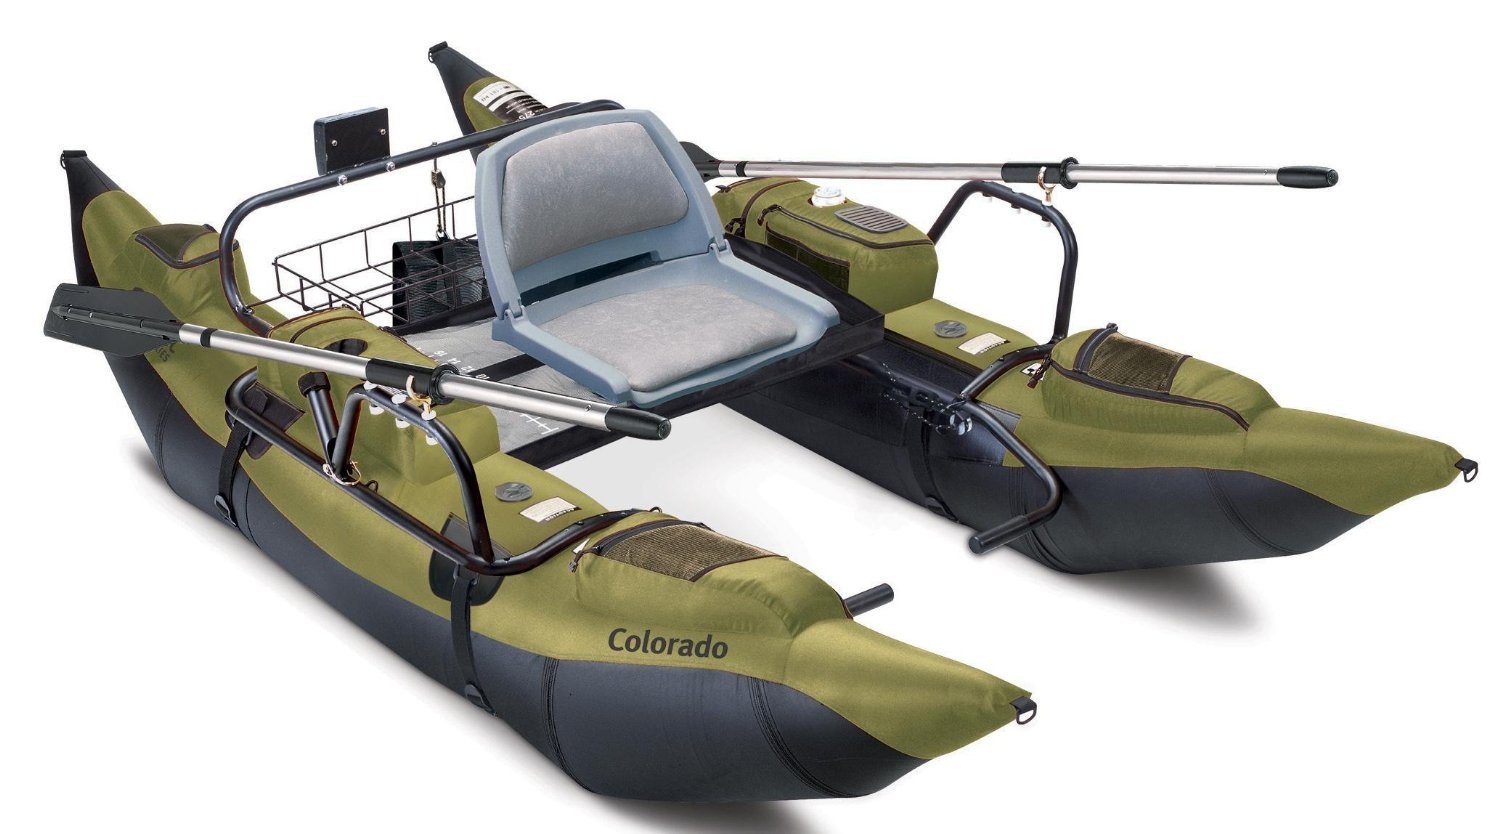 Colorado Inflatable Classic Accessories Pontoon Fishing Boat